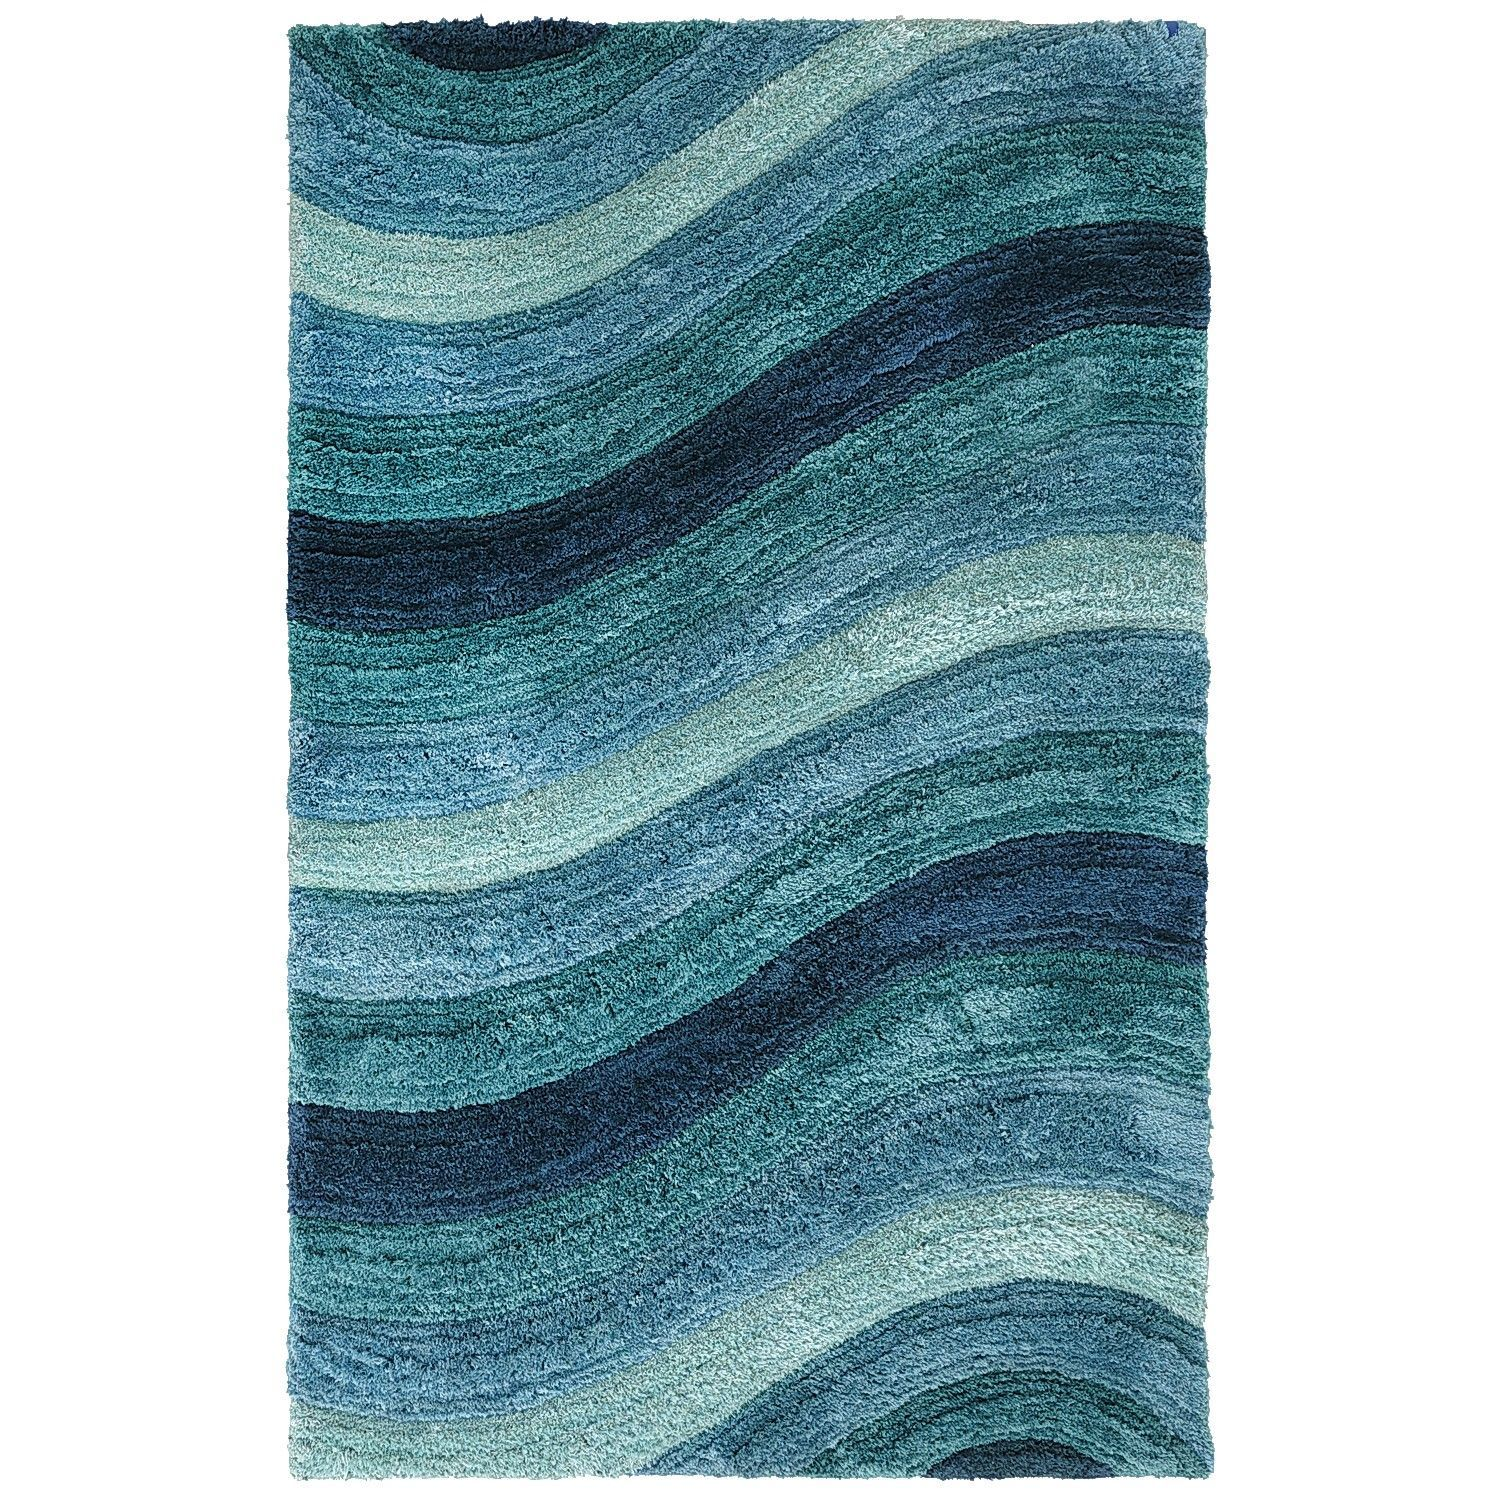 For Our Family Room Larue Wave Shag Rugs Teal Pier